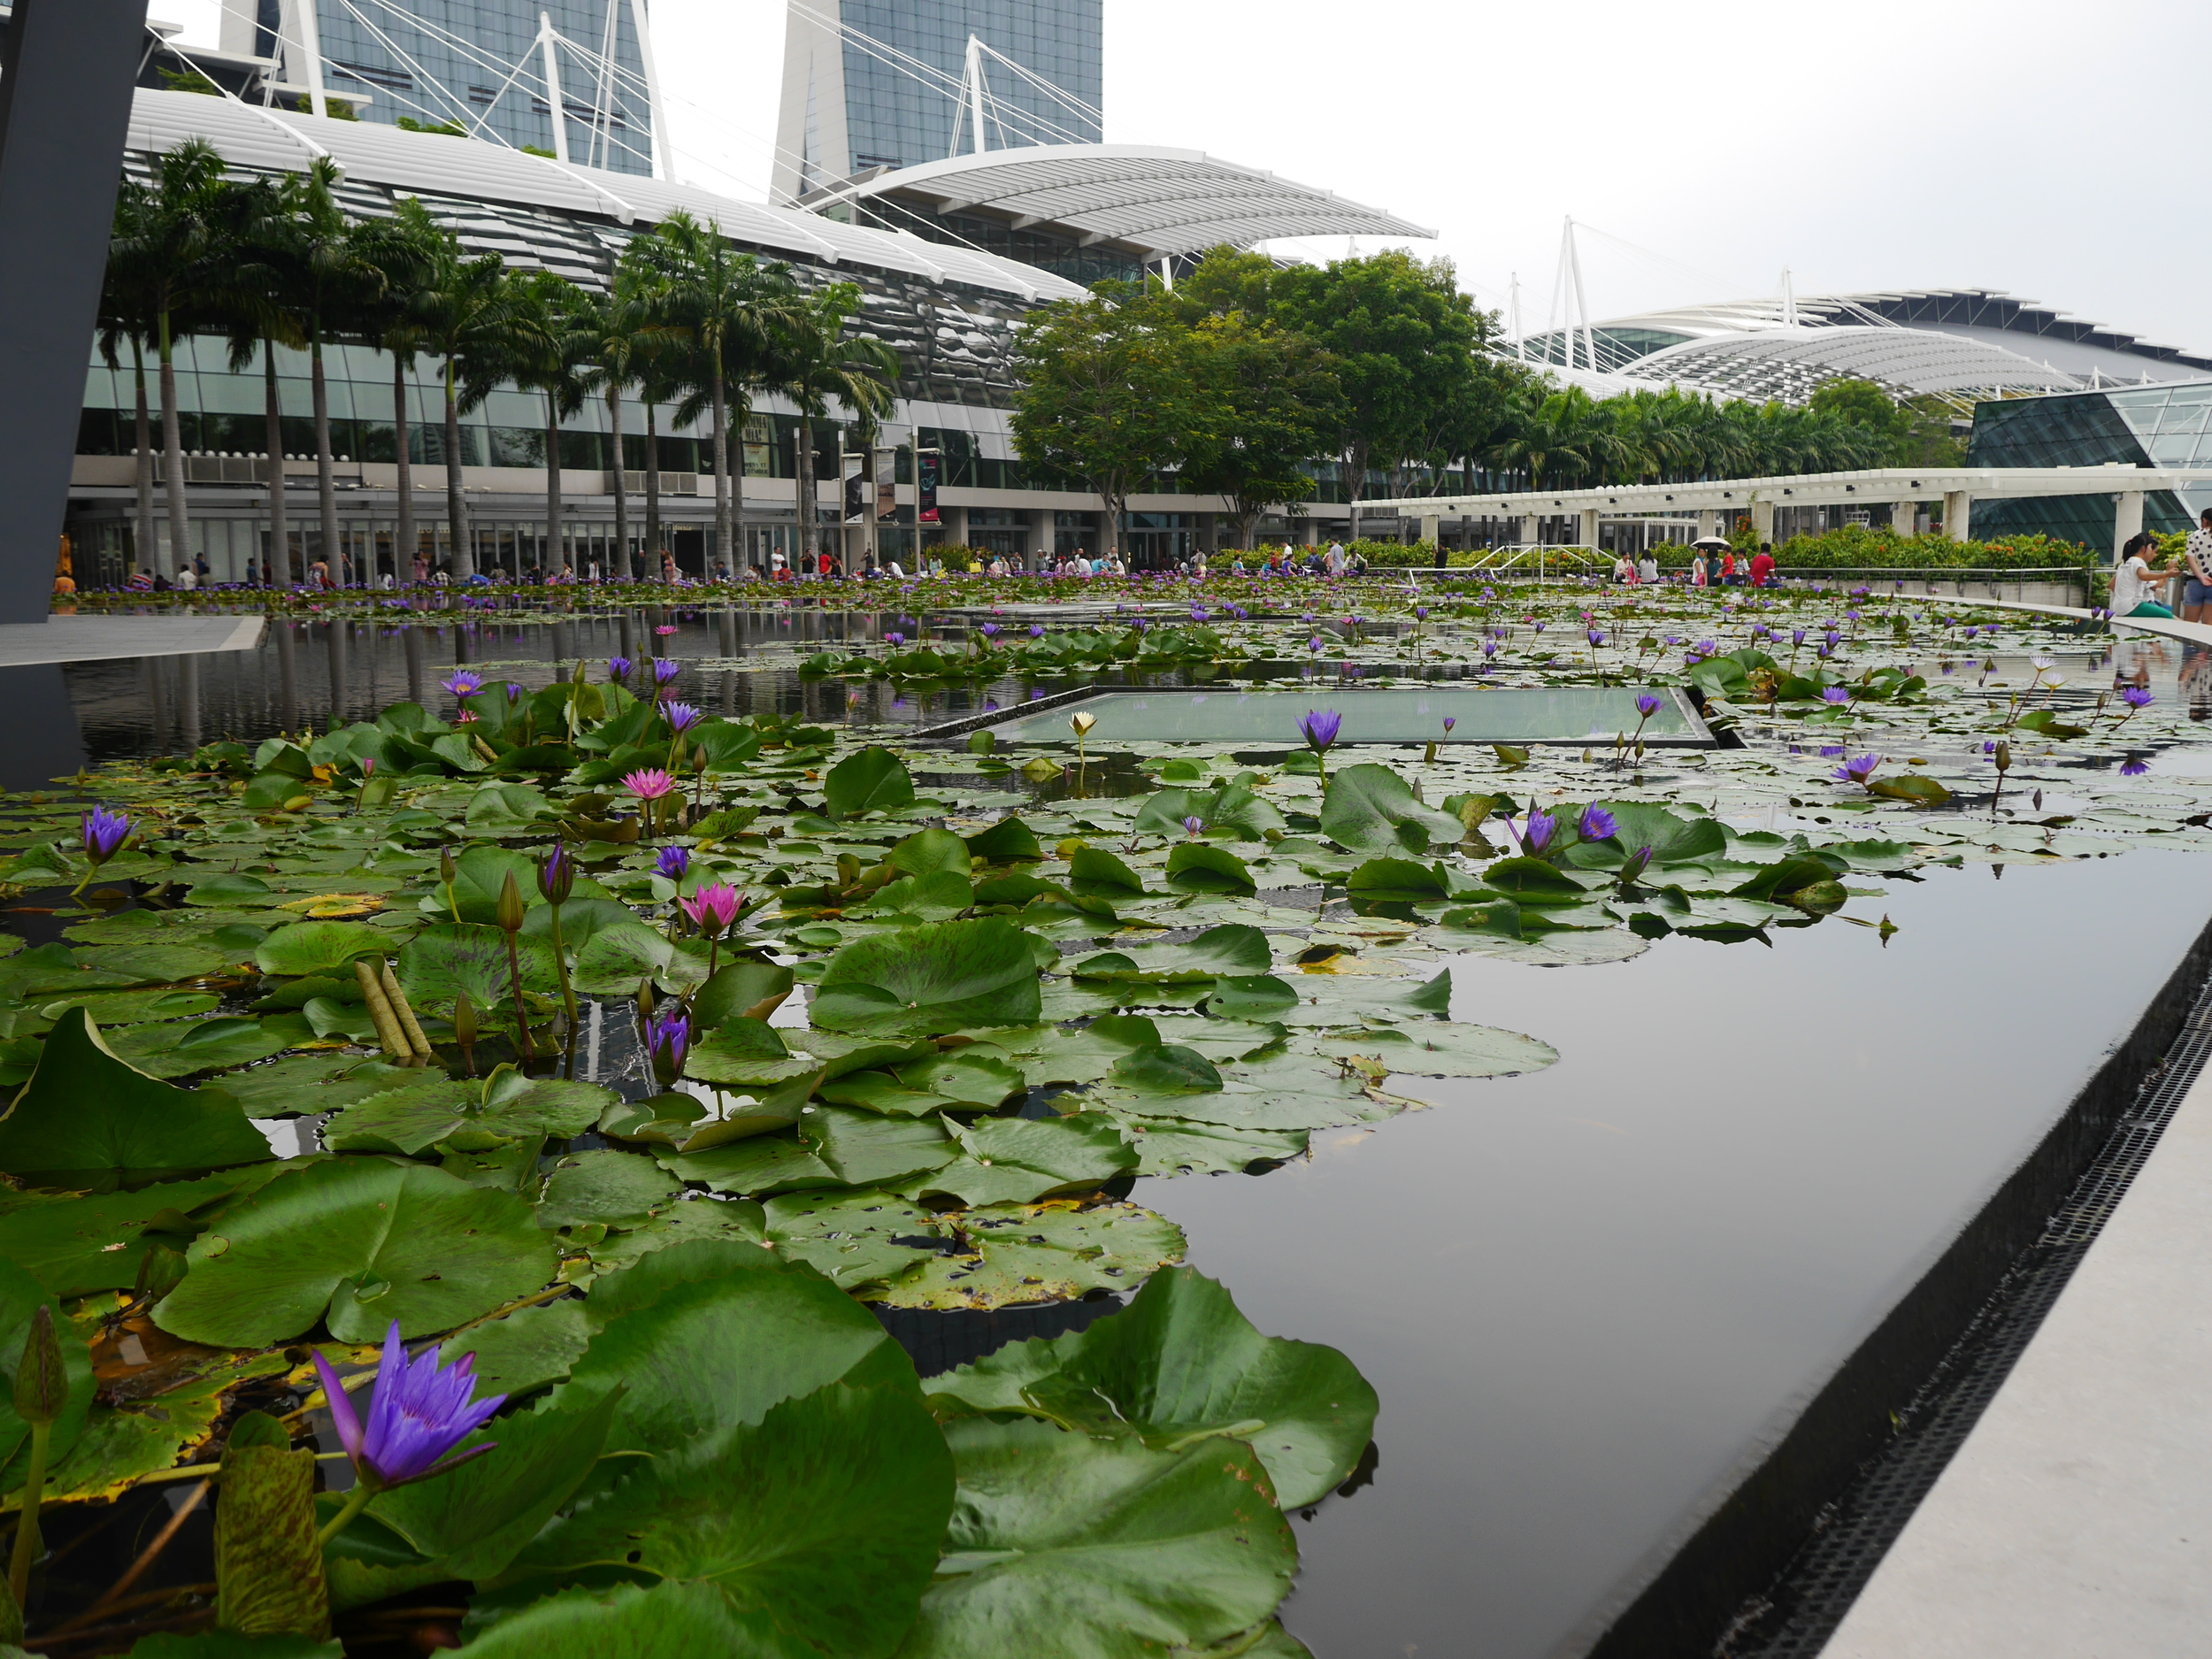 Flowering lily pads just outside the ArtScience museum.